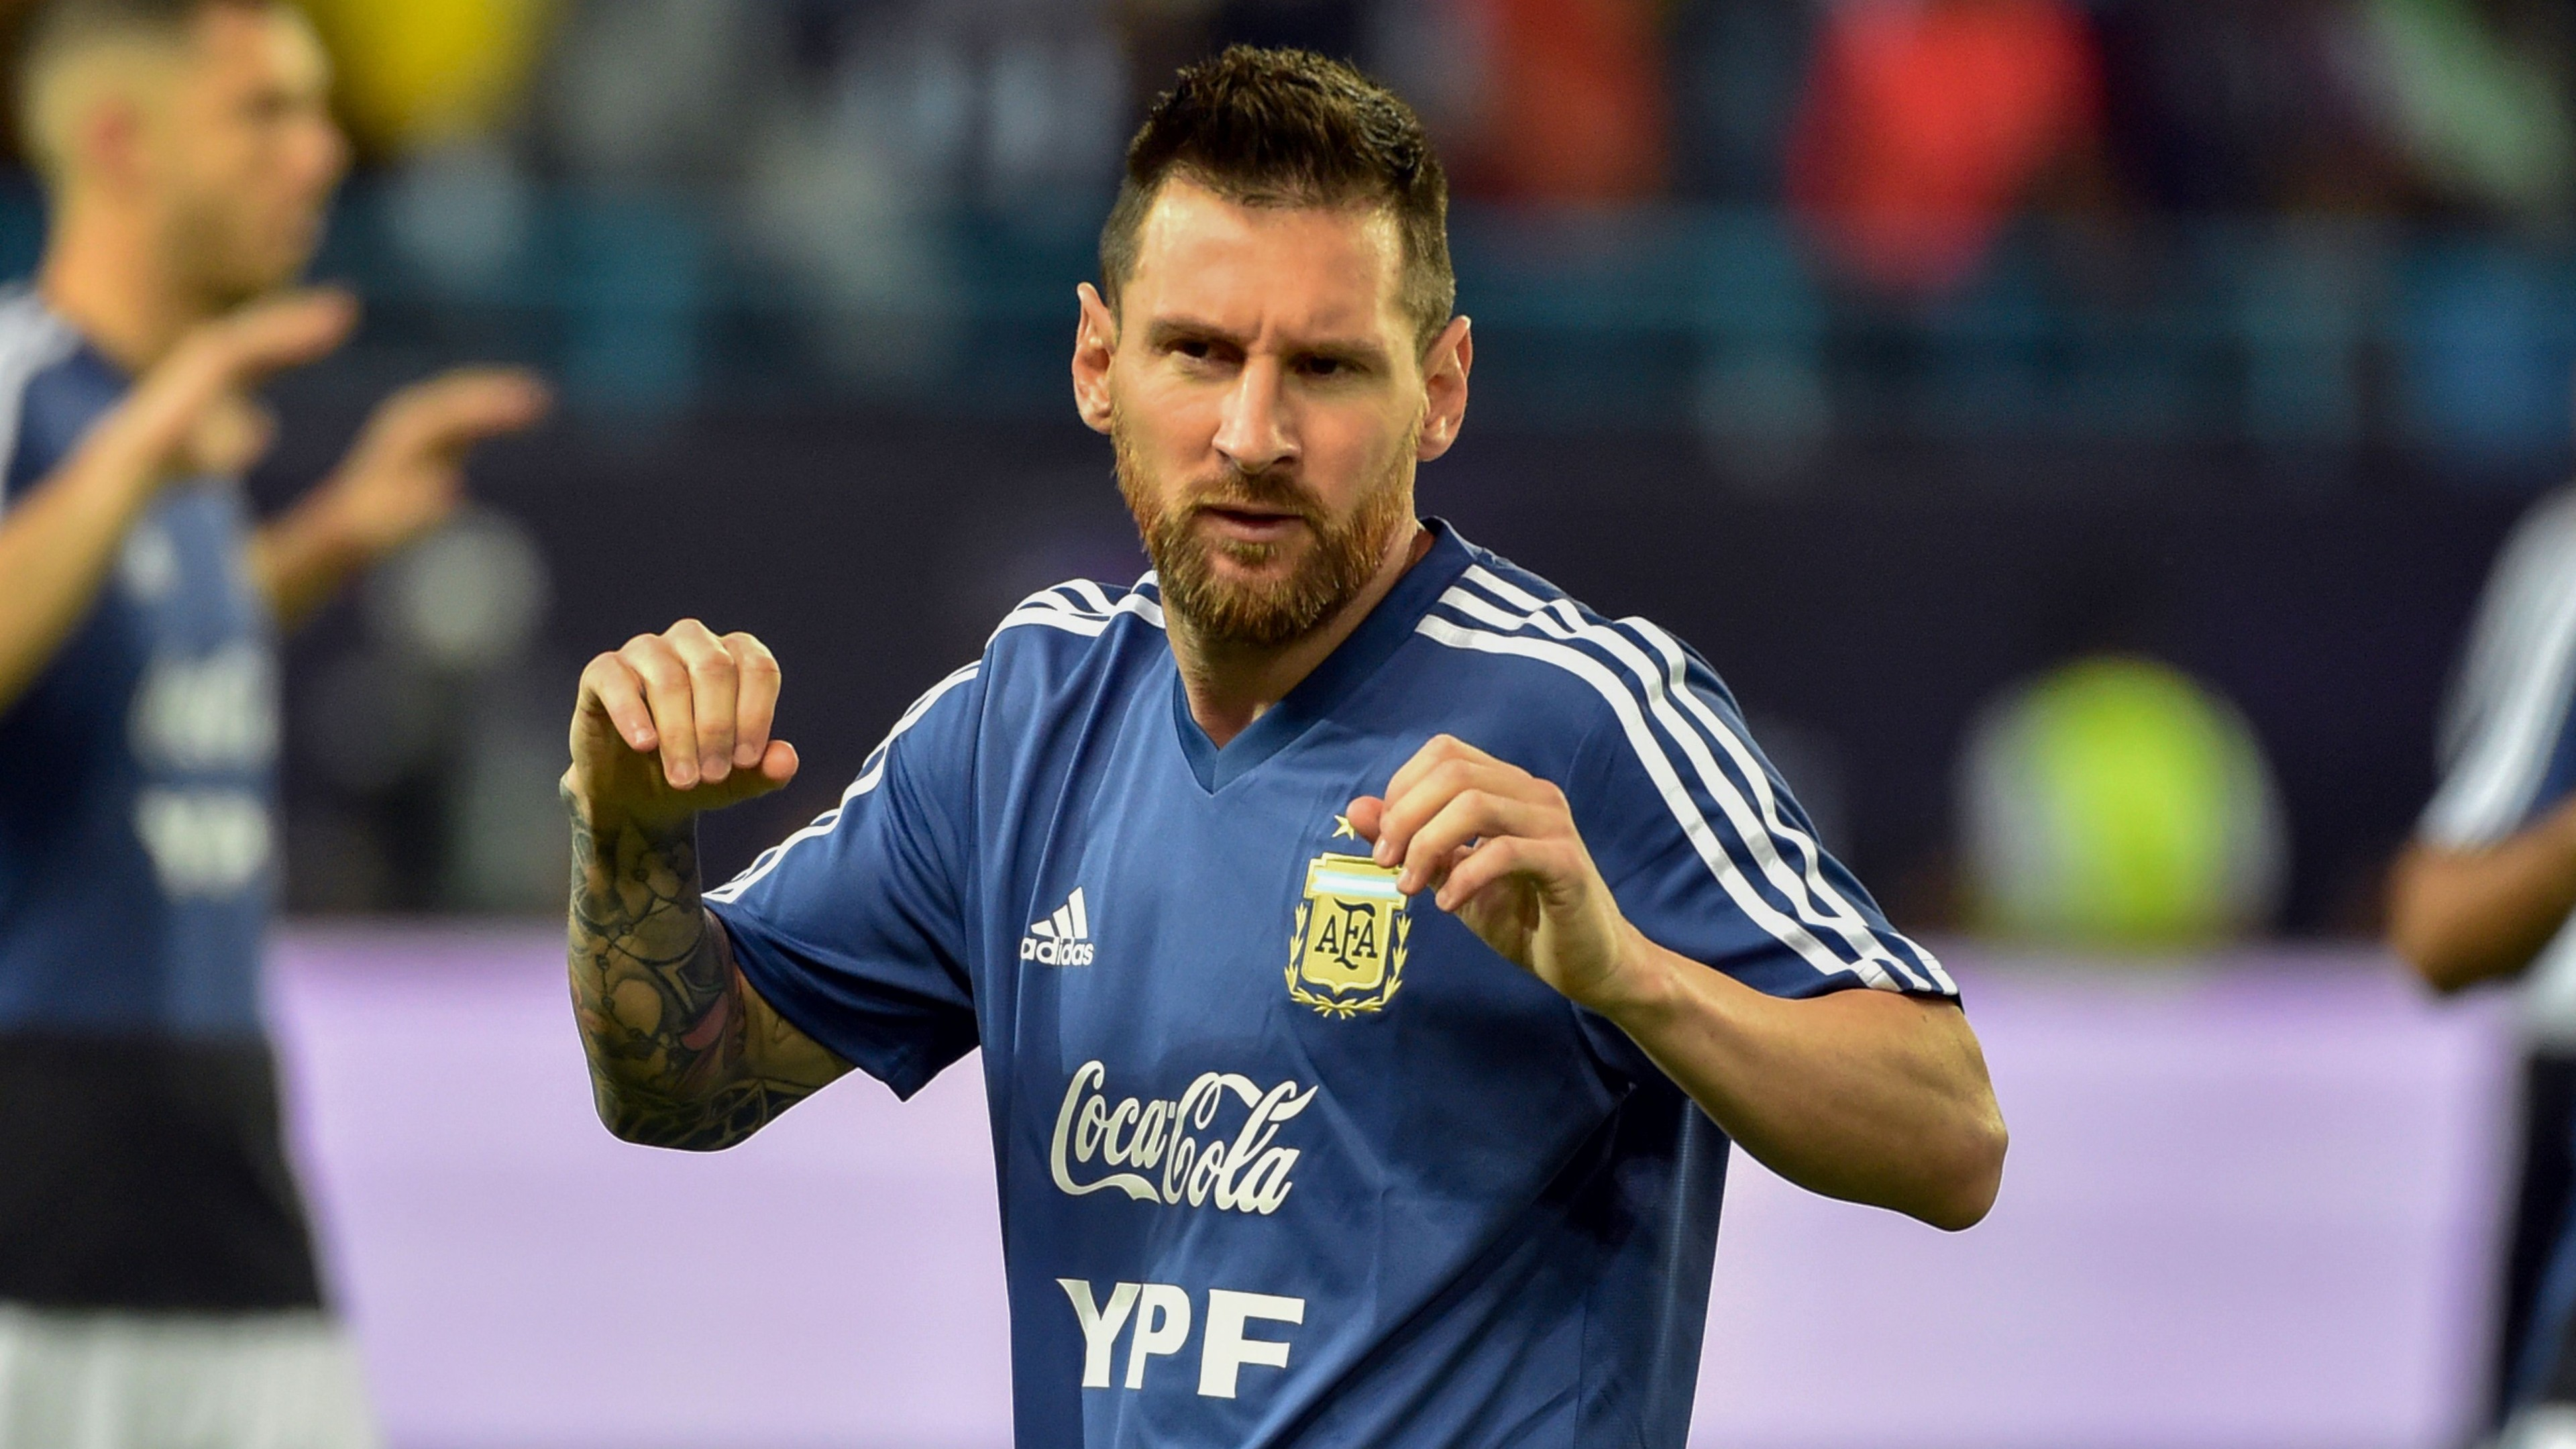 29+ Messi Beard Long Images